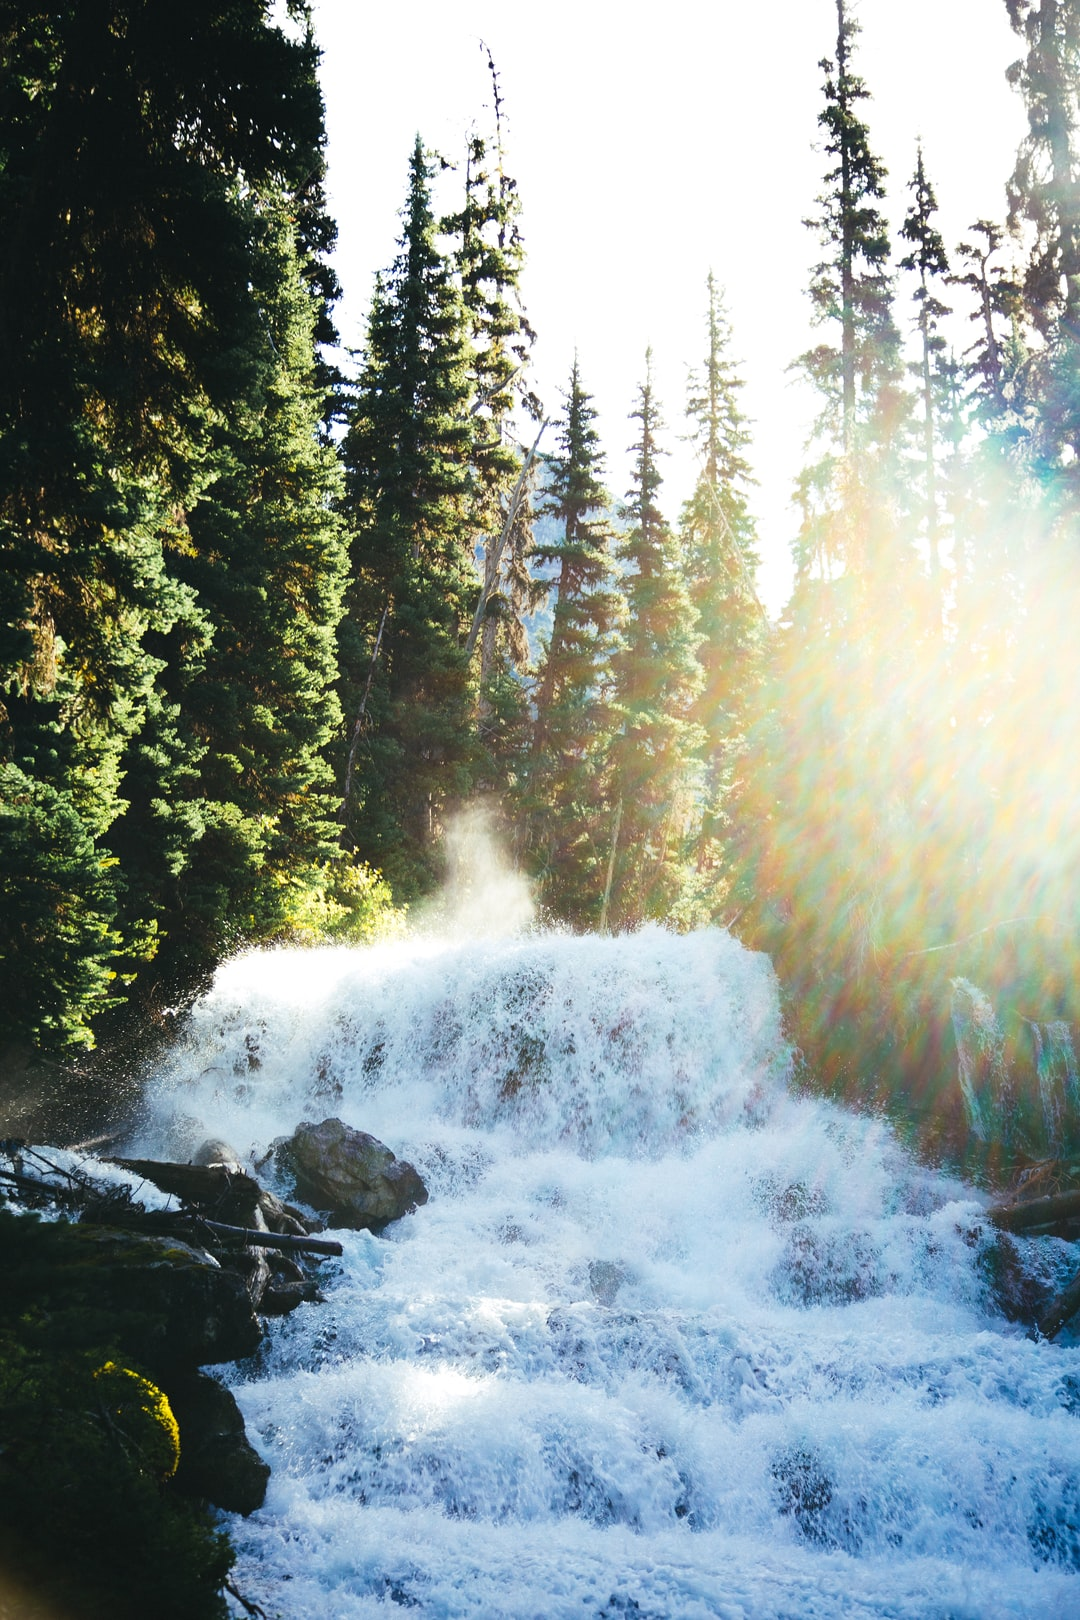 Holloway Falls in Joffre Lakes Provincial Park. This waterfall flows at it's highest in late spring to early summer flowing from the upper to the middle lake.  If you're interested in using this image on your website and plan on including an attribution, would you please link to my website, www.jackchurch.photo in the description? Thank you!